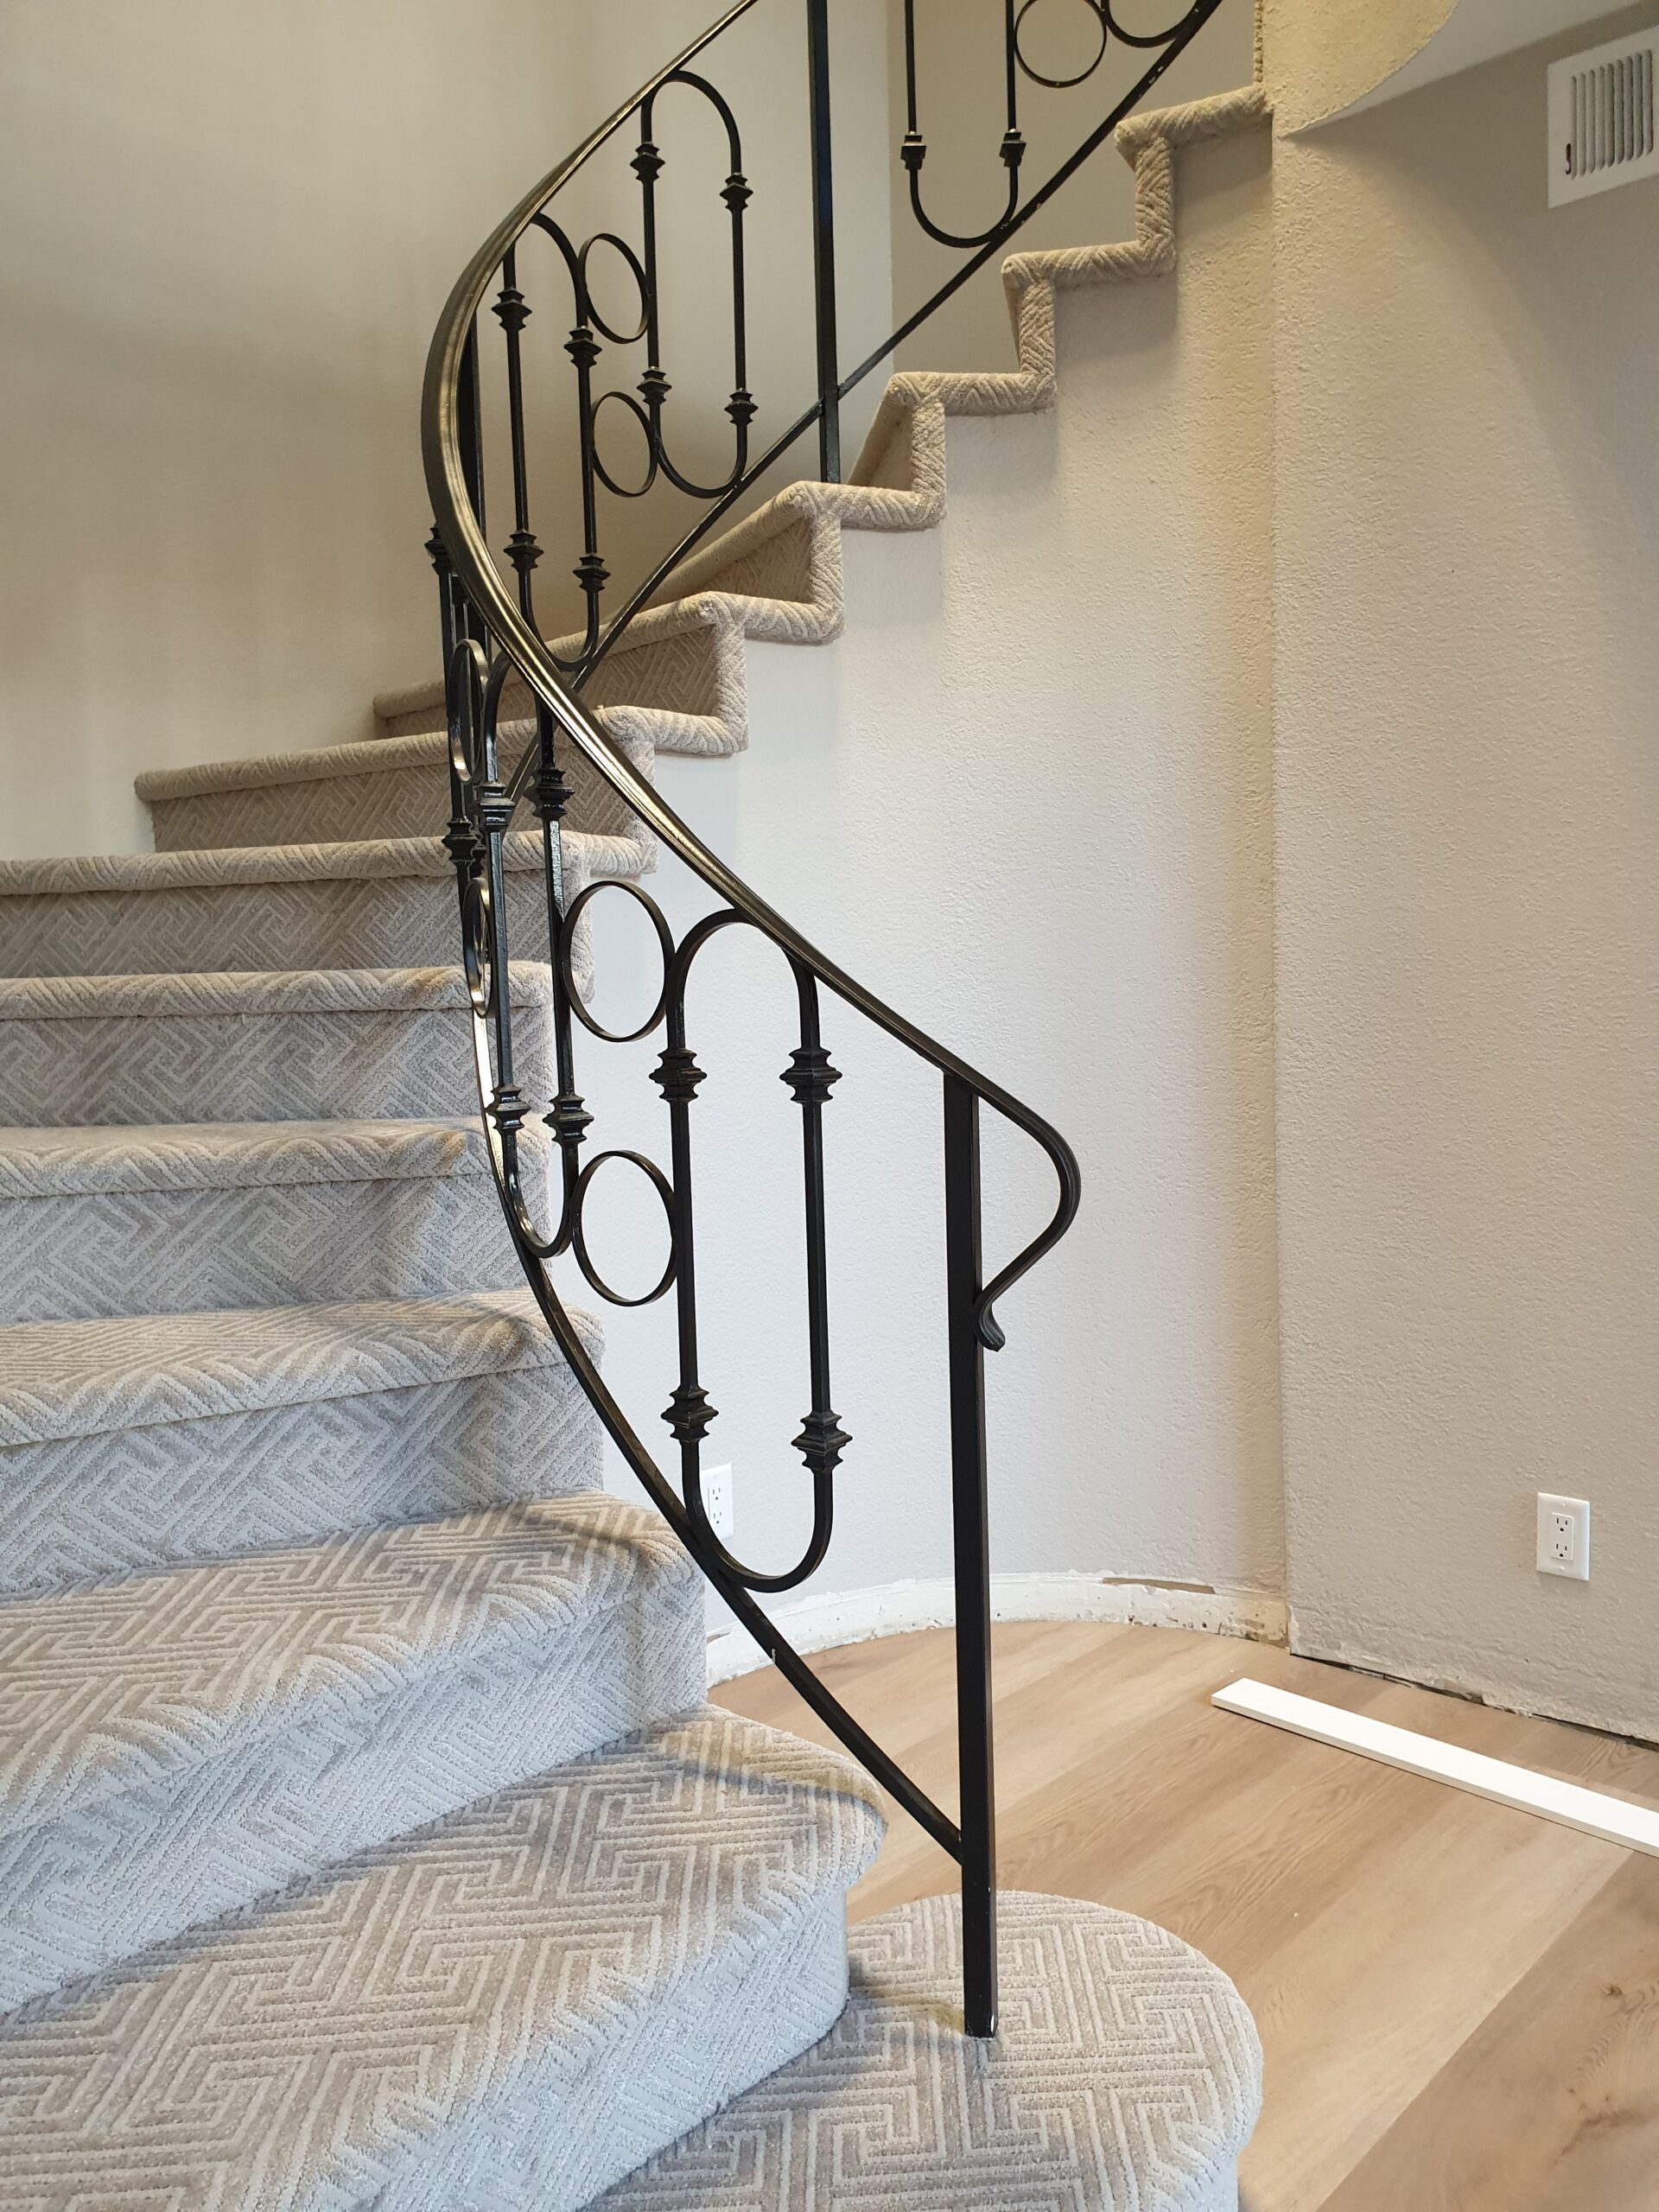 Carpet Flooring on Spiral Stairs in Mountain View